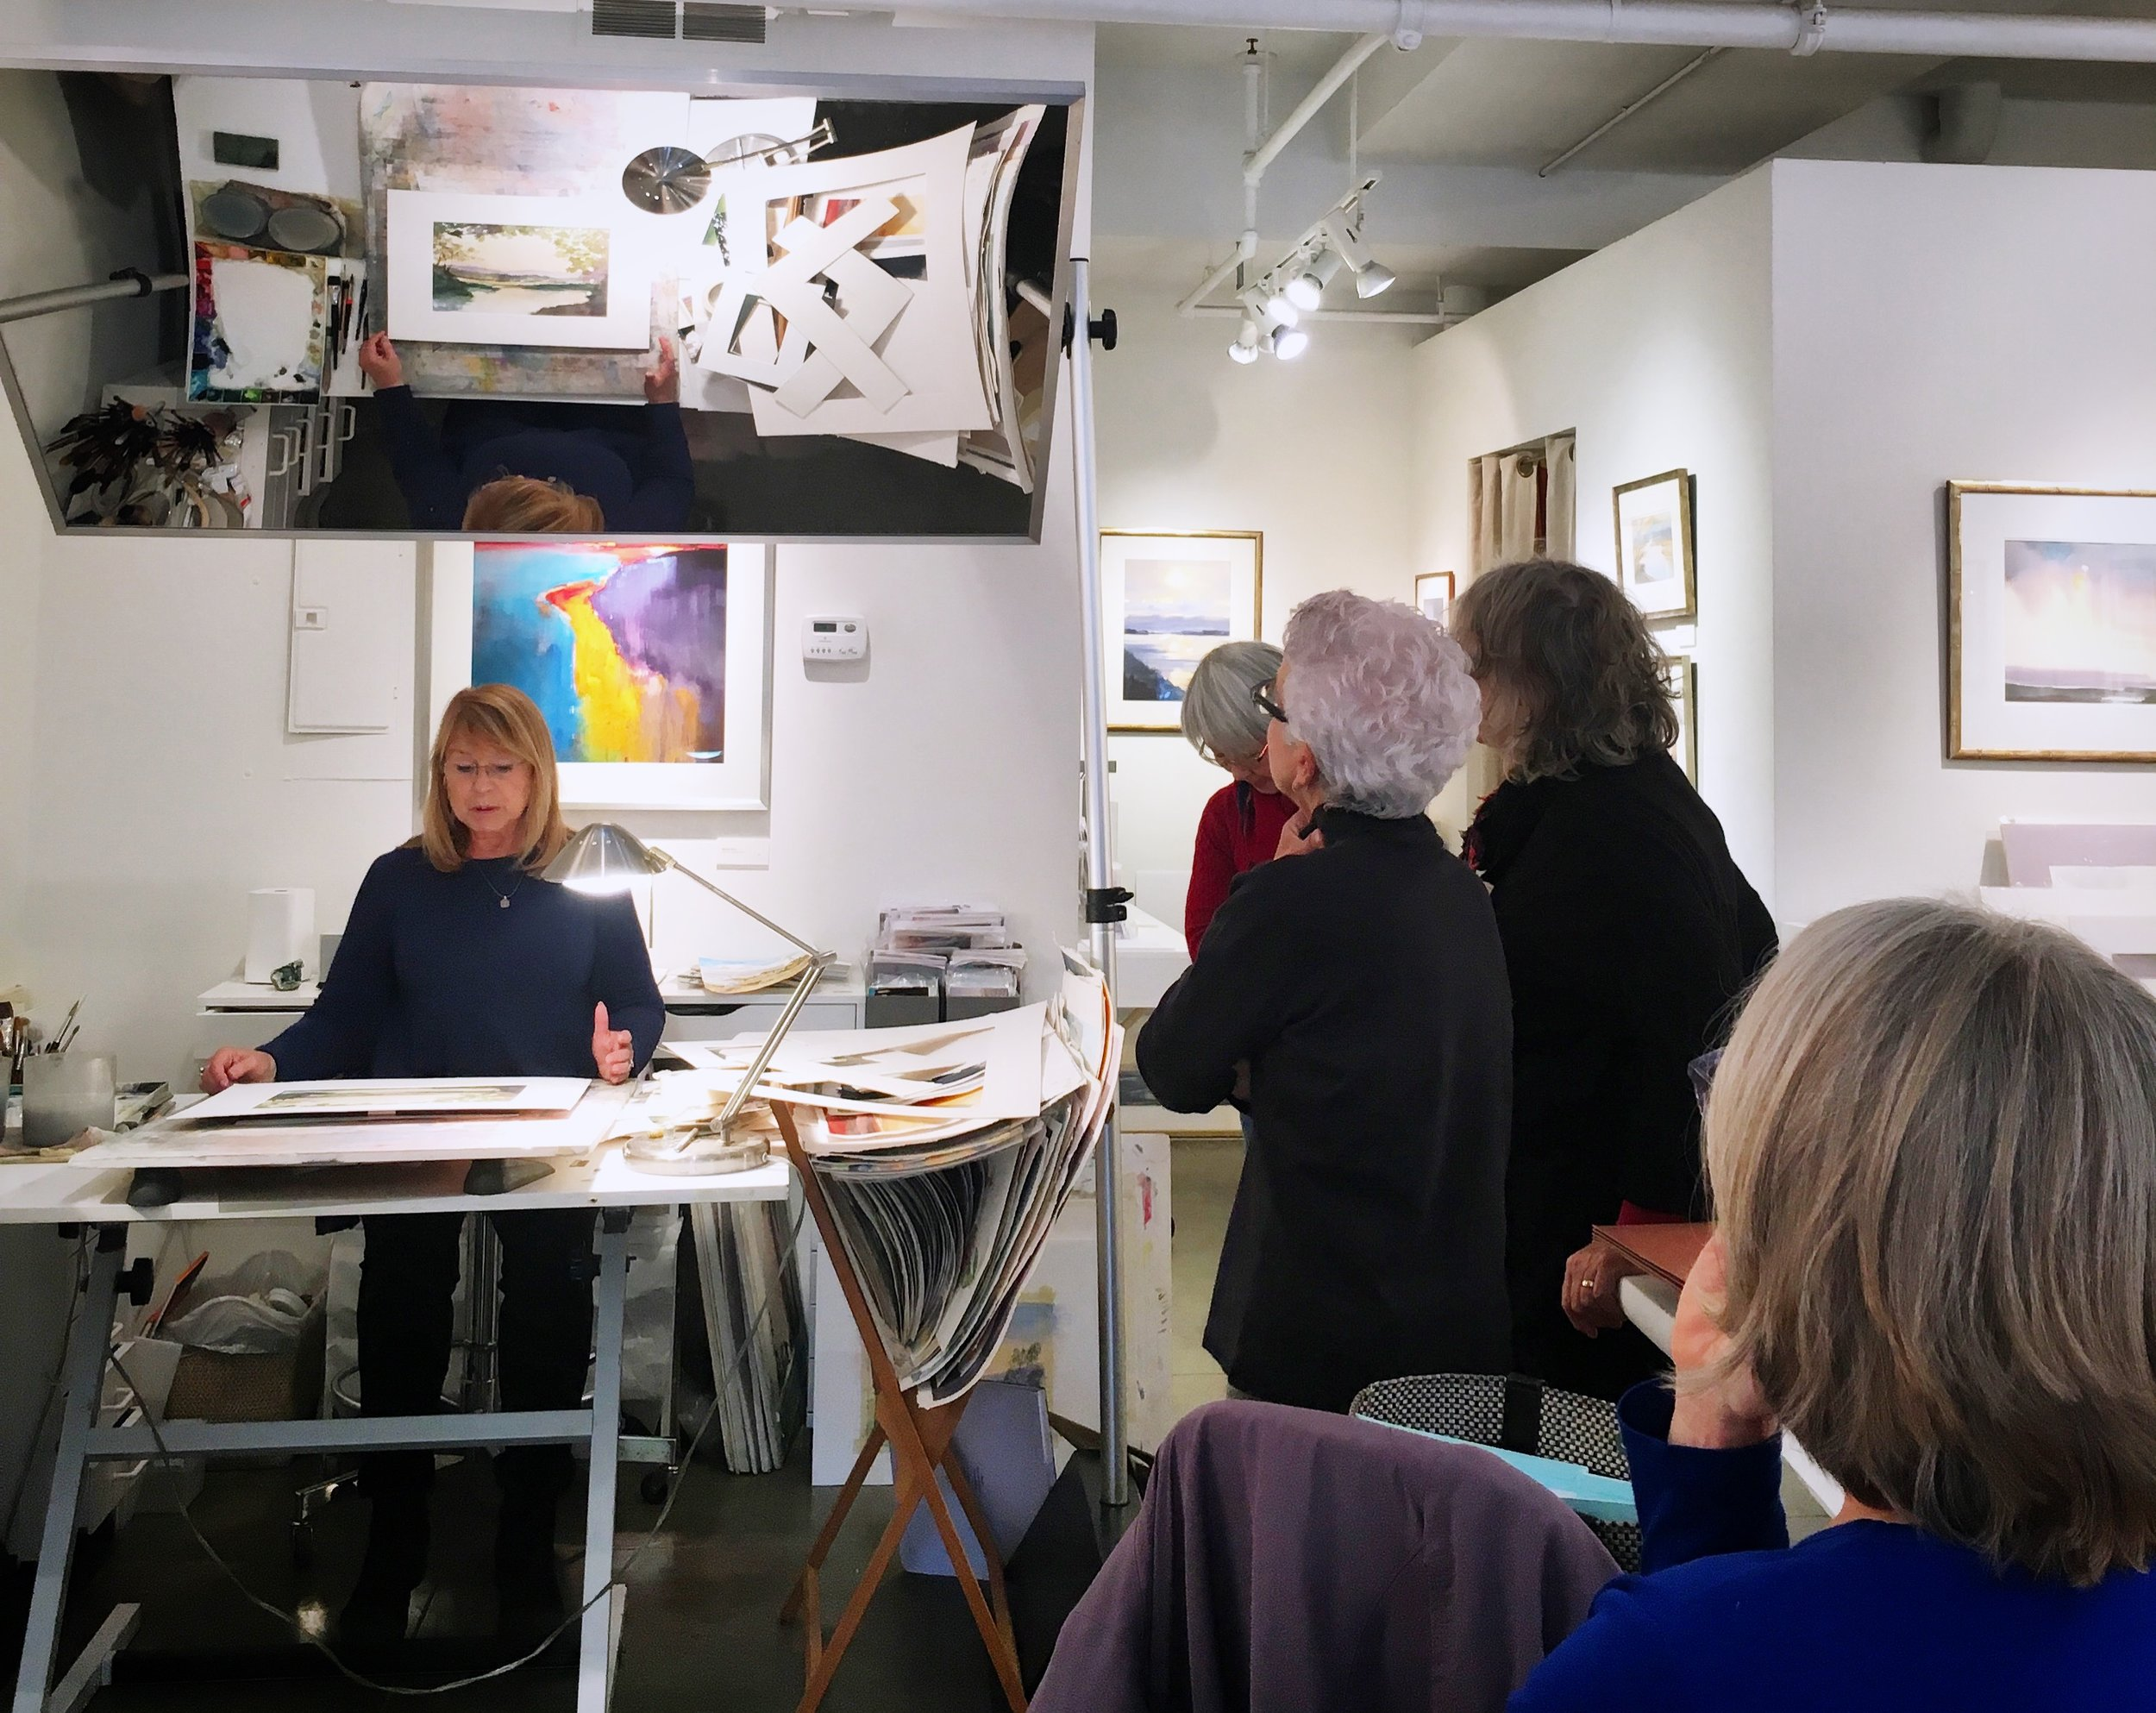 Beginner Watercolor with Betsy Jacaruso - Starting with the basics: learn foundational watercolor techniques. Demonstrations and guided studio practice. No experience required.